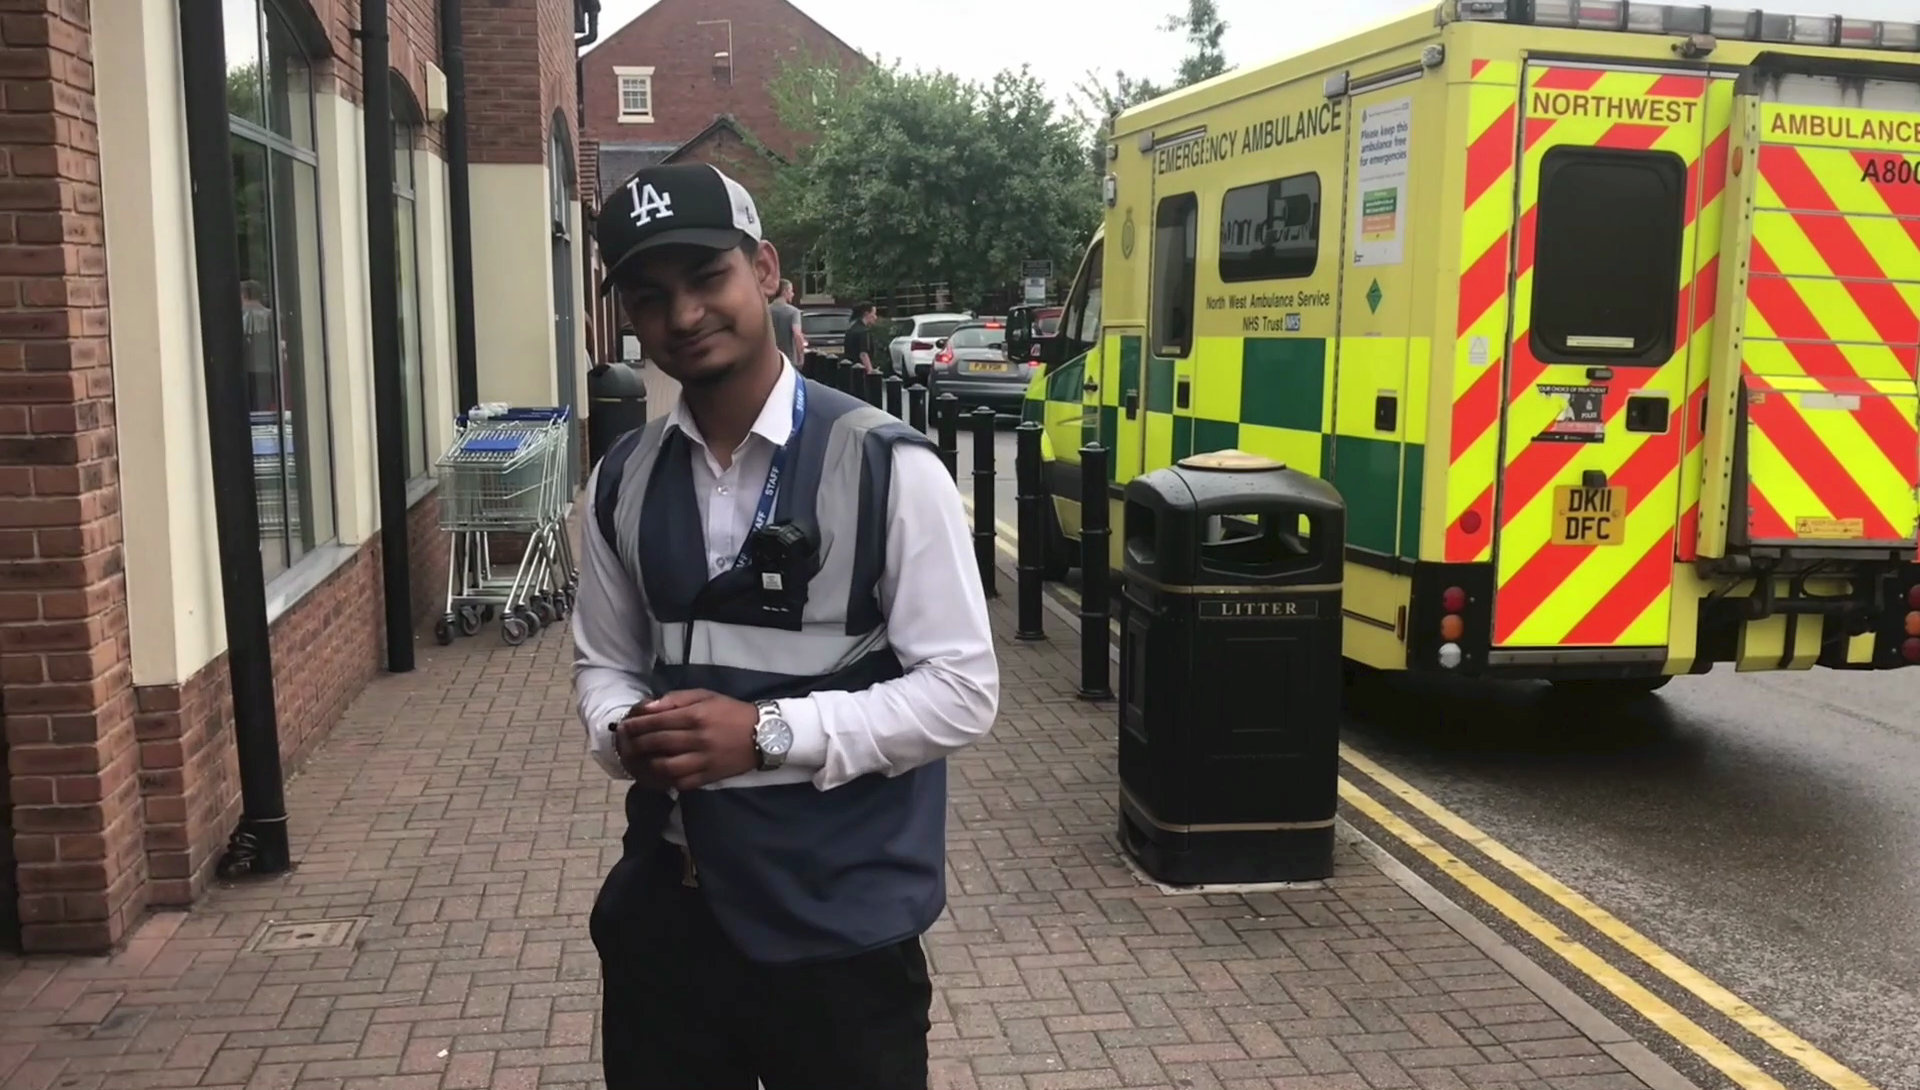 Parking attendant gives fine to ambulance.